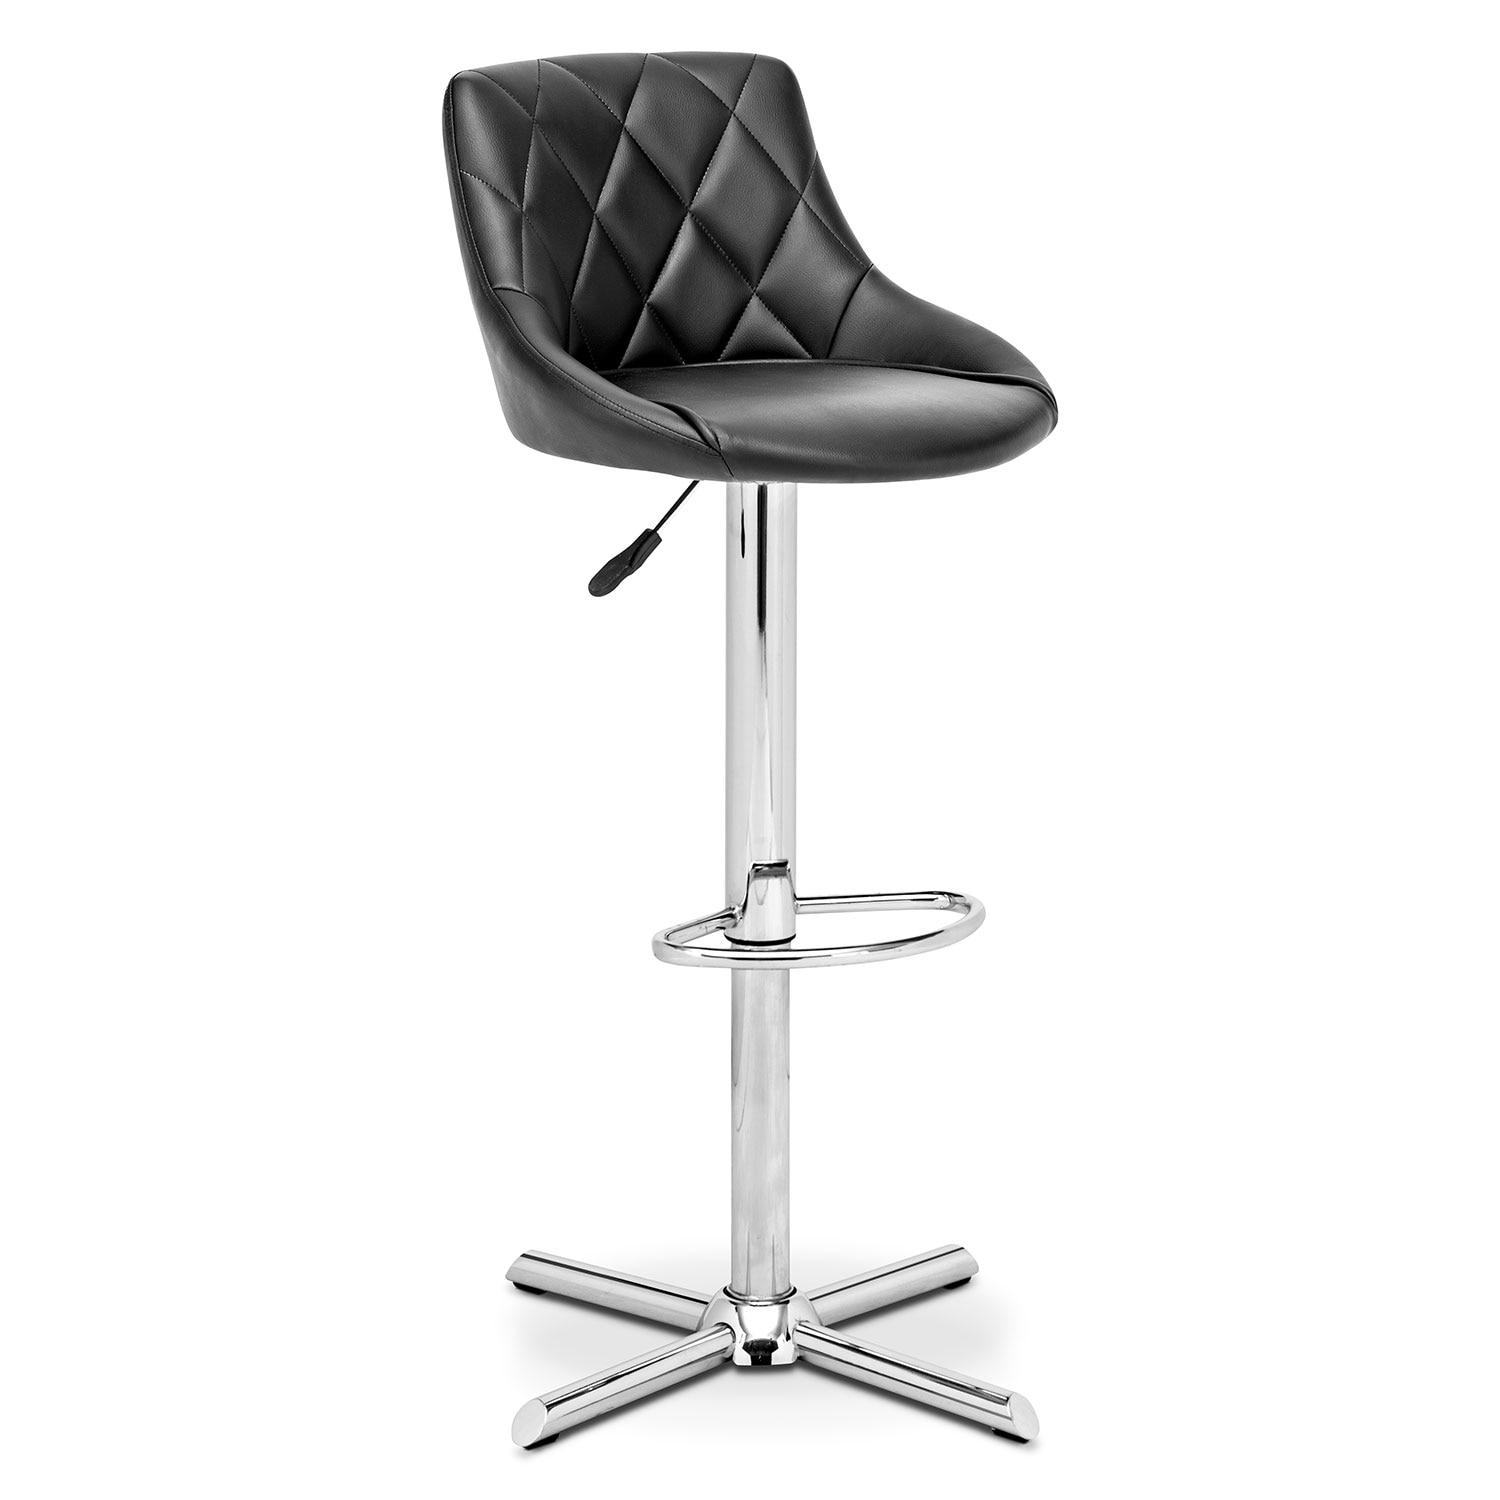 Dining Room Furniture - Caymen Adjustable Barstool - Chrome